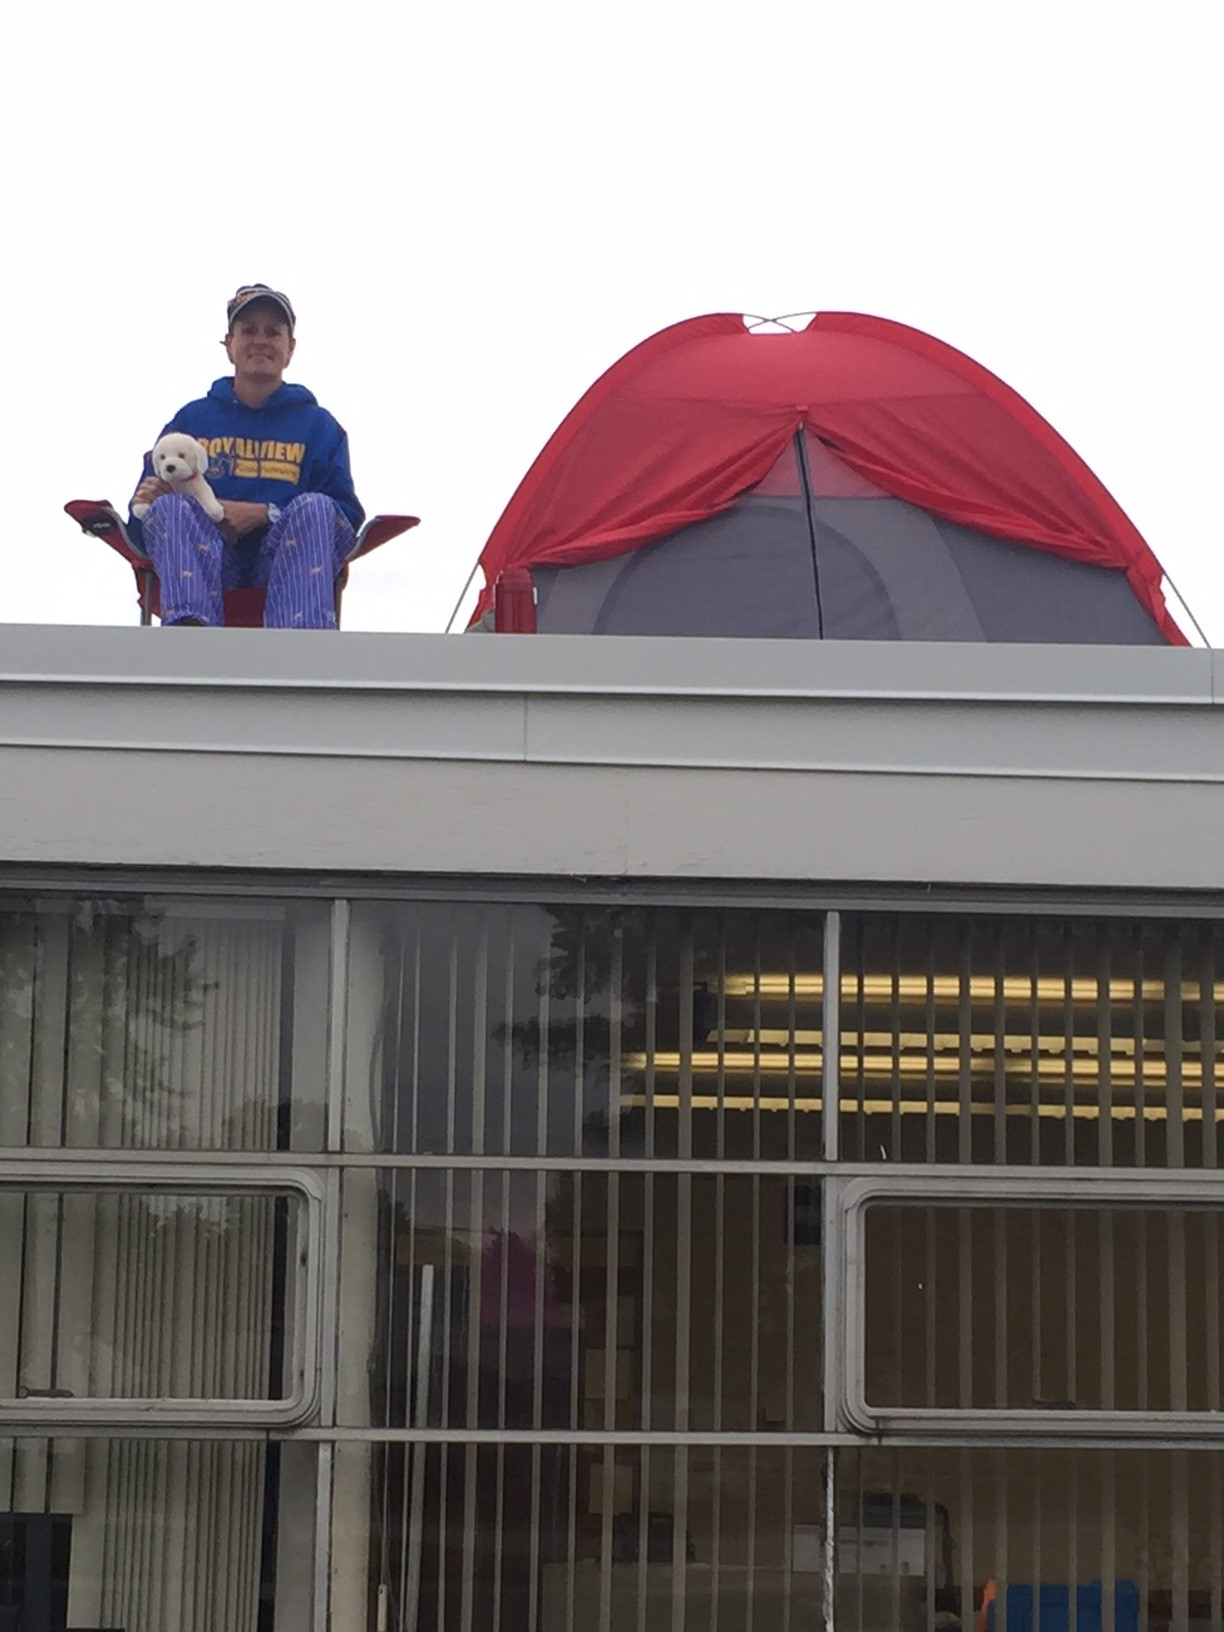 Prinicipal Cantwell spends the night on the roof of Royalview!